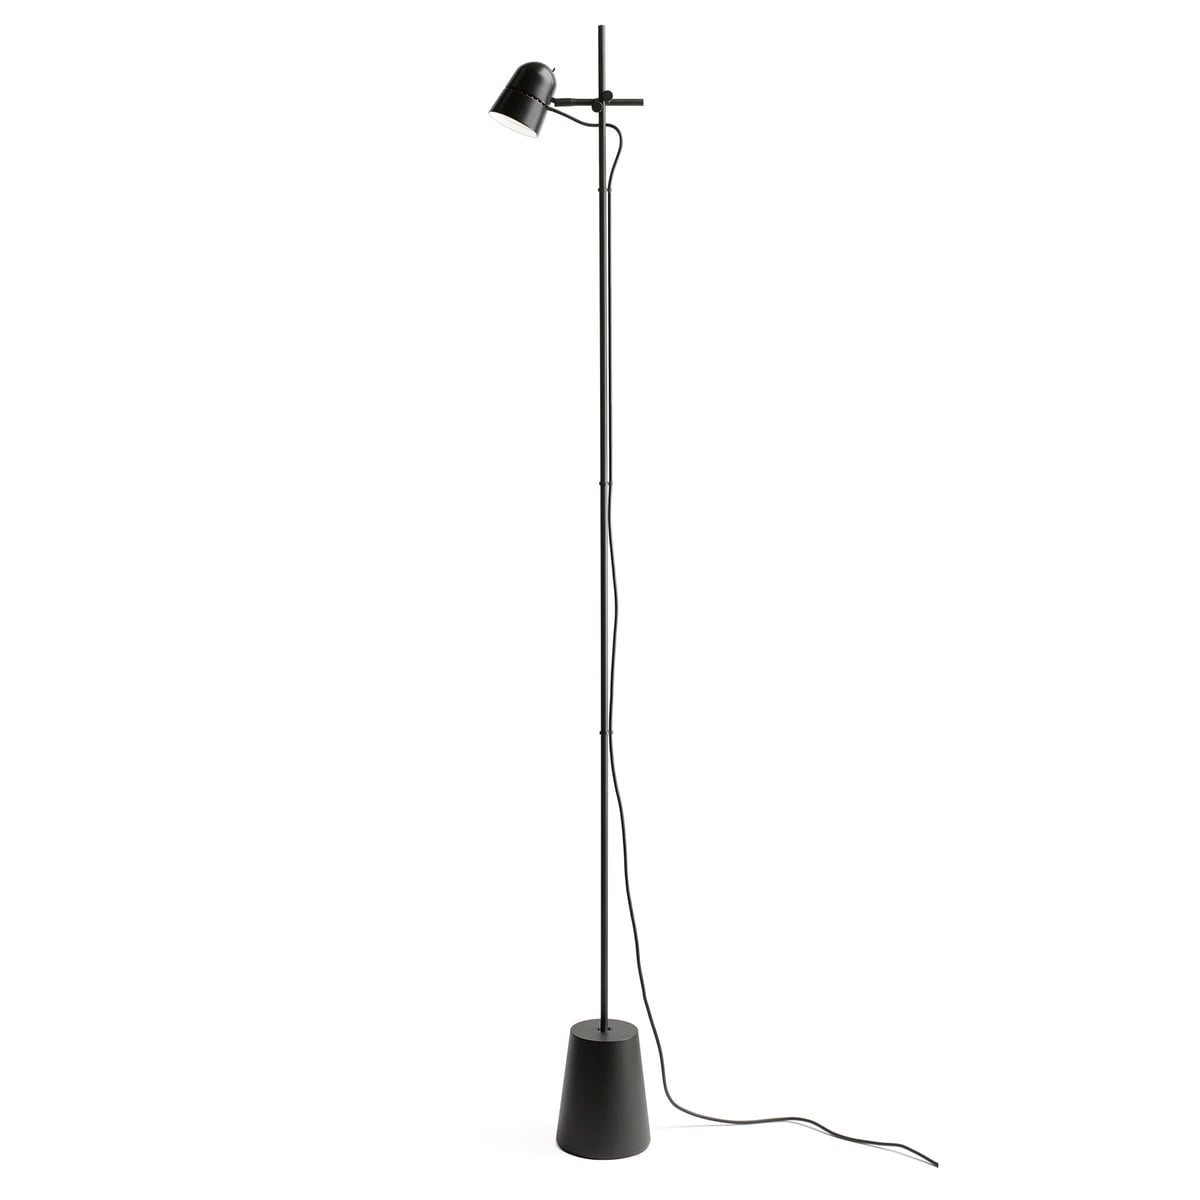 Counterbalance Floor Lamp by Luceplan:The Counterbalance Floor Lamp by Luceplan in Black,Lighting